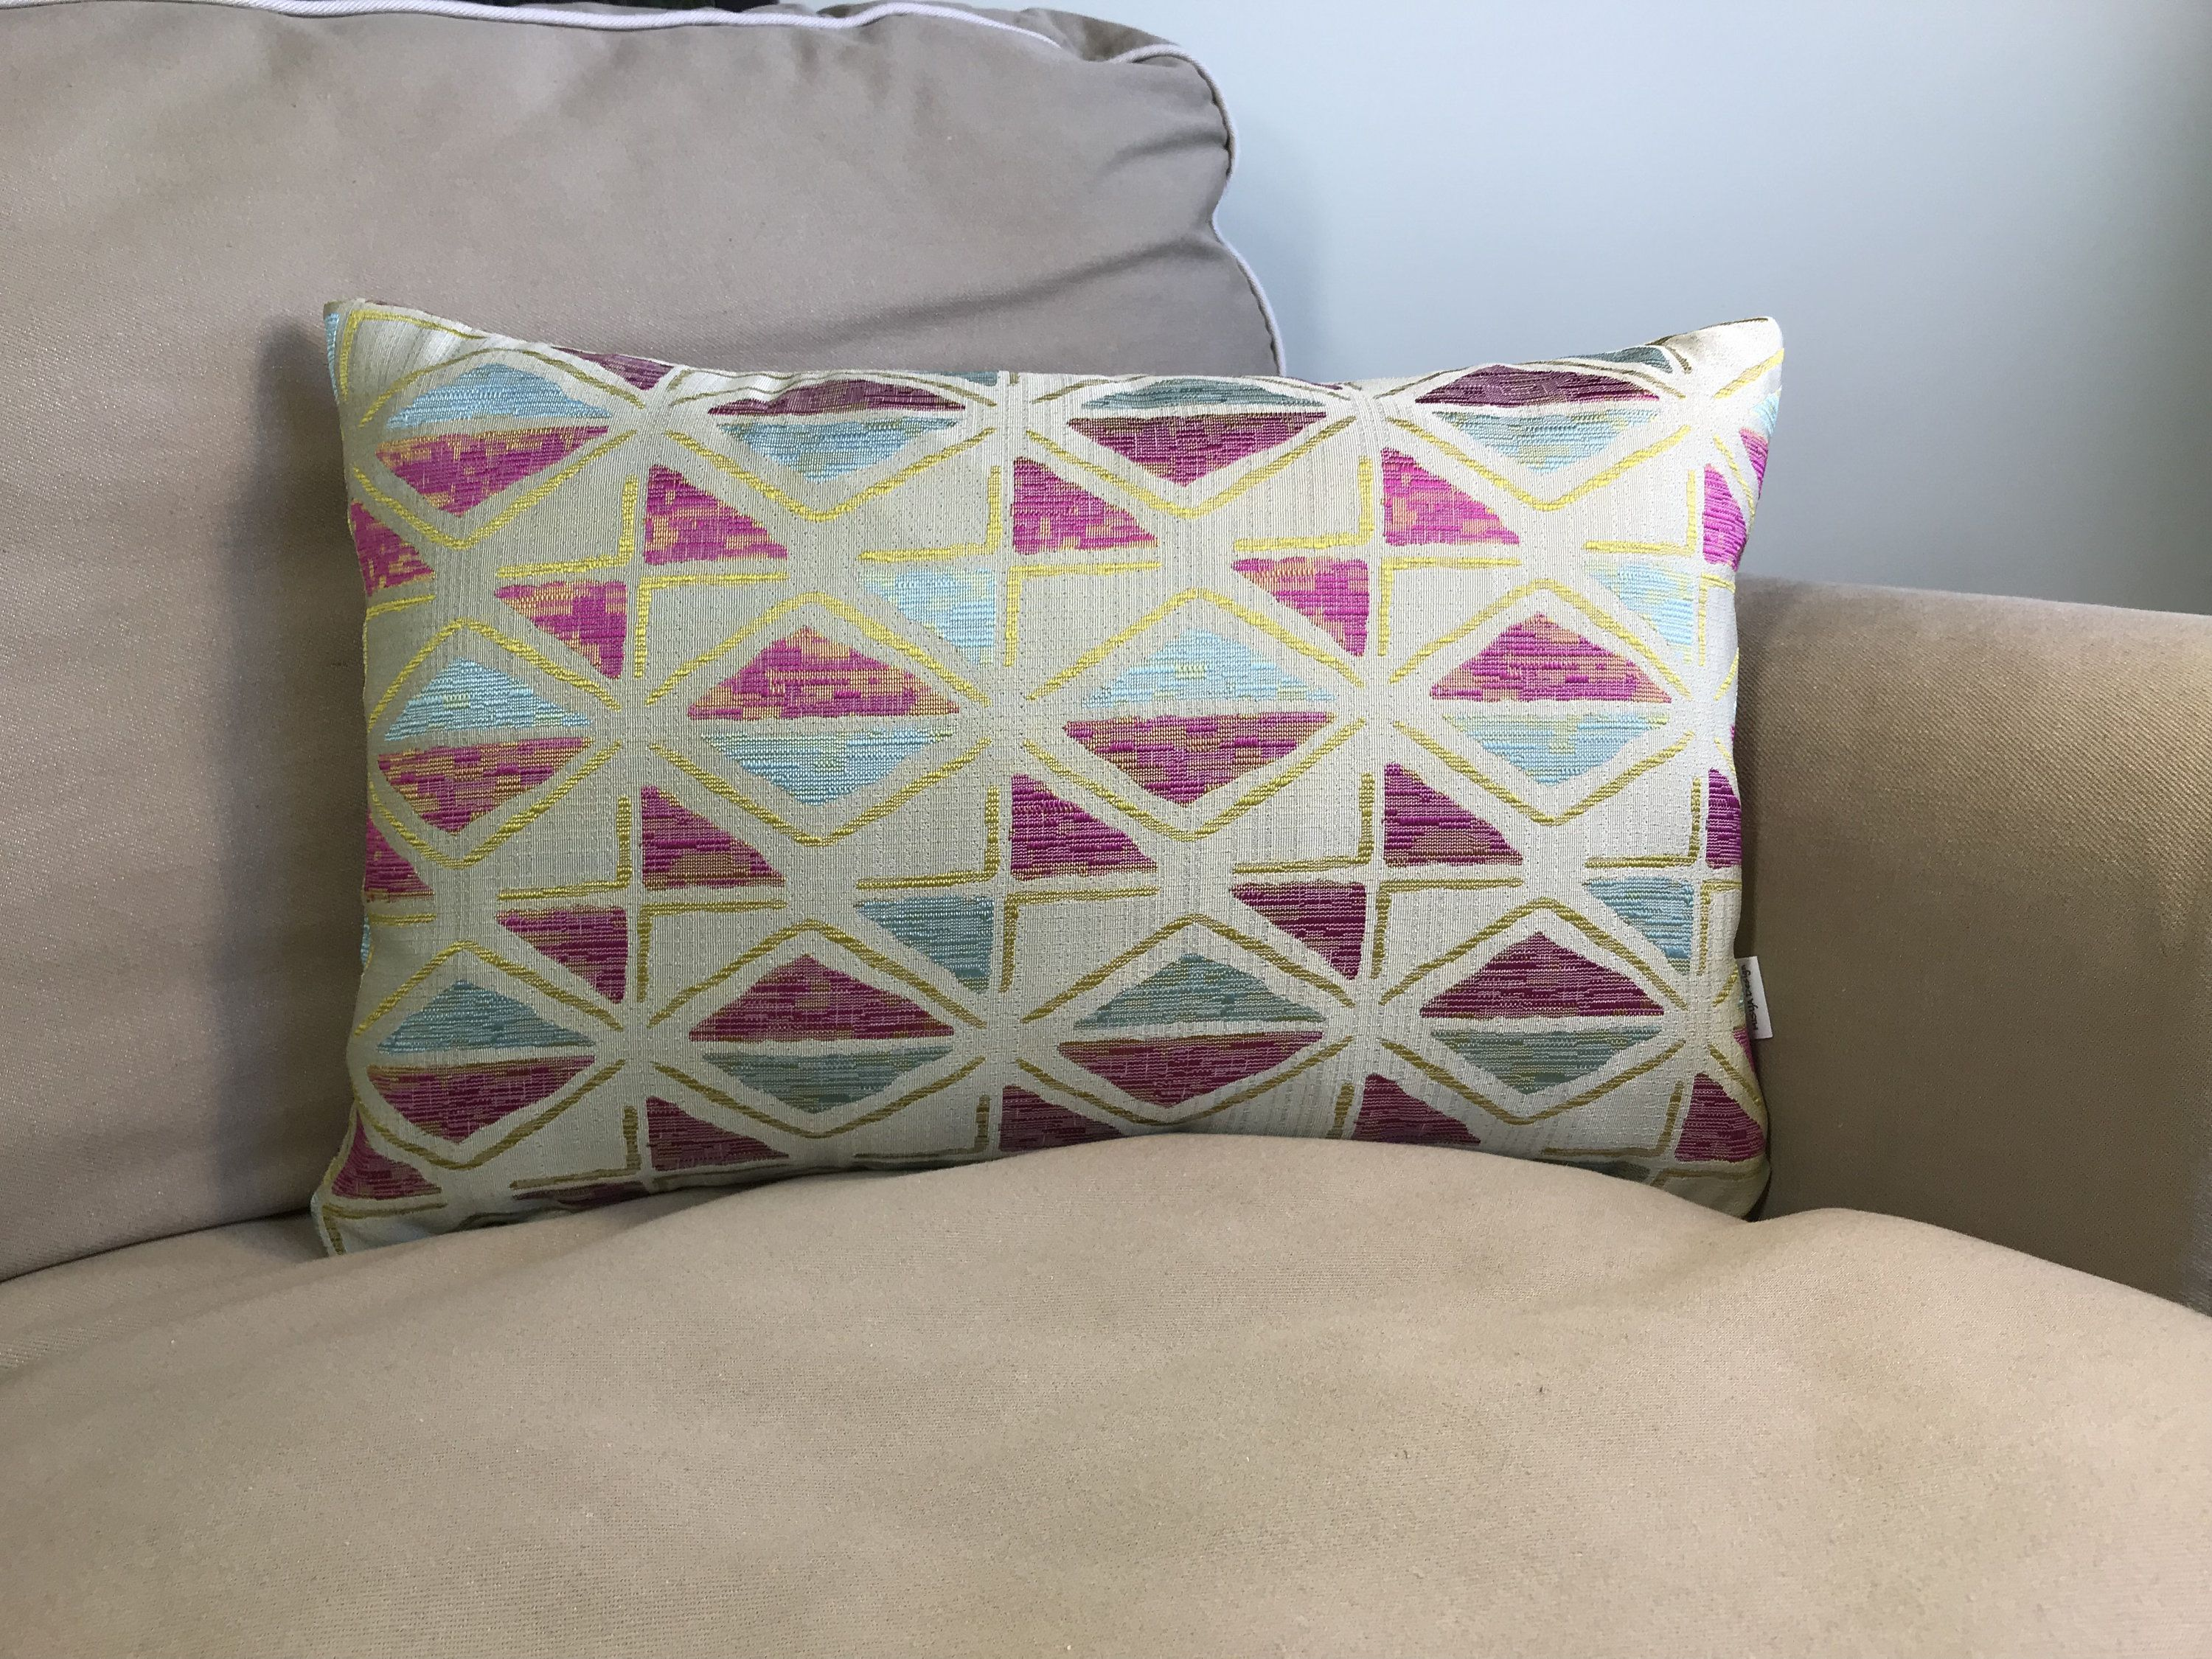 Pillow Pink Golden Yellow Two Sided Pillow Cover Handmade Pillow Case Rectangle Pillow Cover Colourful Cushion Decorative Pillow Handmade Pillowcases Handmade Pillows Colourful Cushions